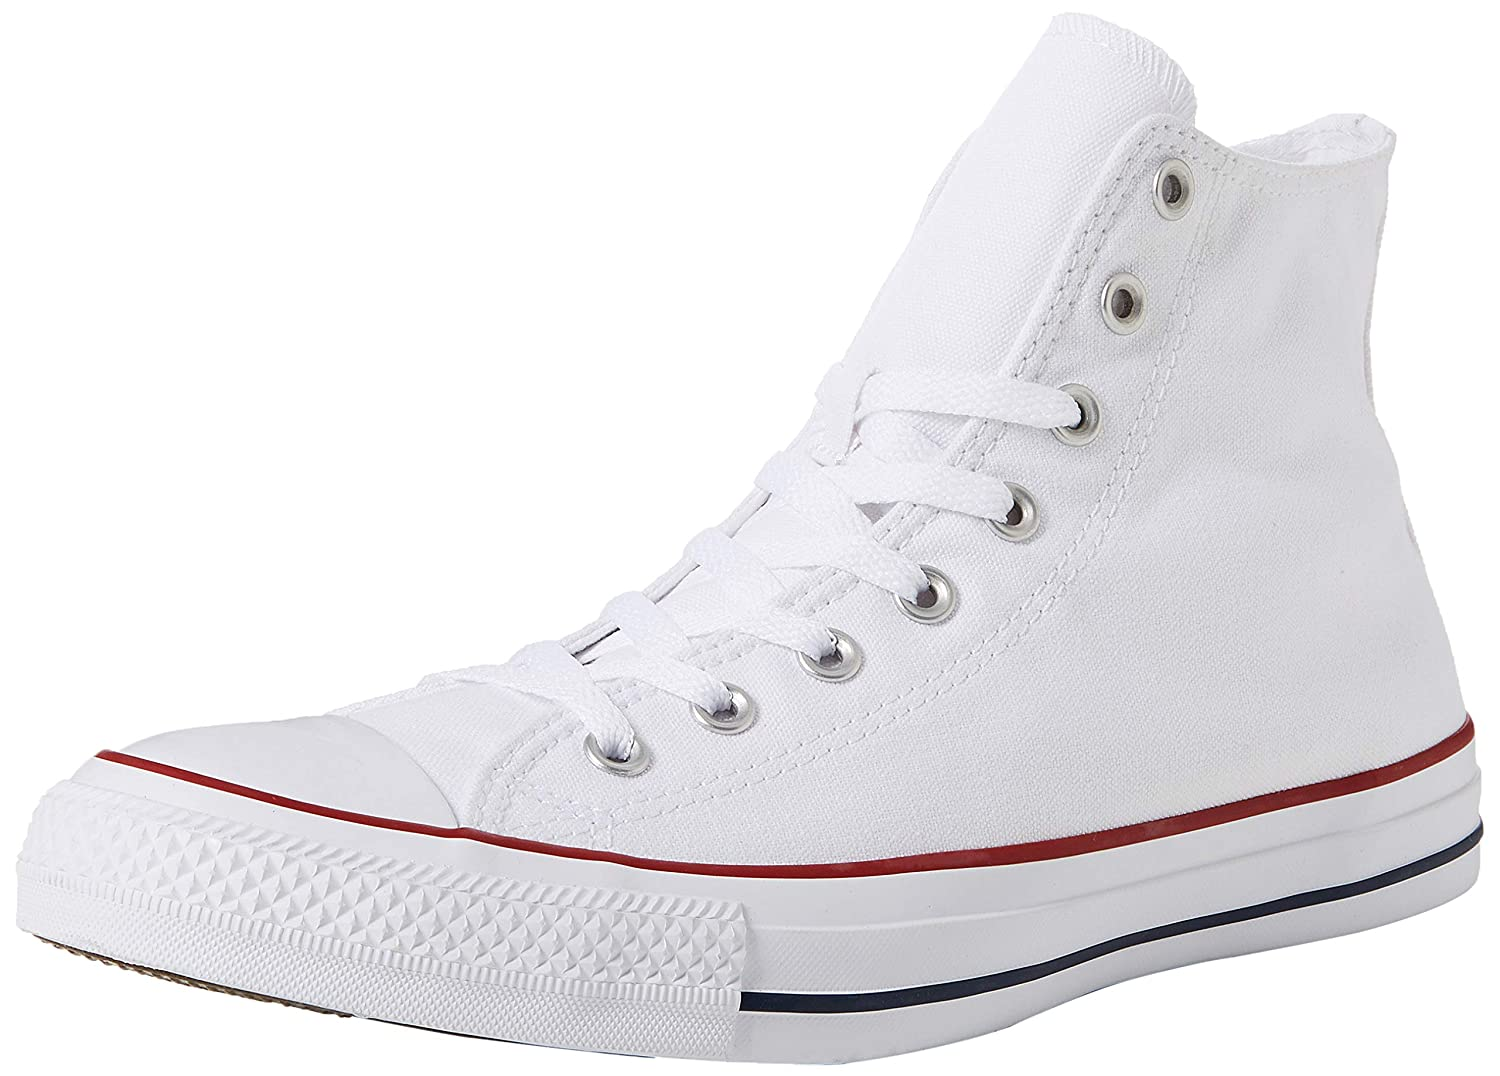 Converse Chuck Low Taylor Etoiles Low Sneakers Top Sneakers Sneaker Mode B01LZ4JAHT Blanc (Optical White) d259bda - shopssong.space